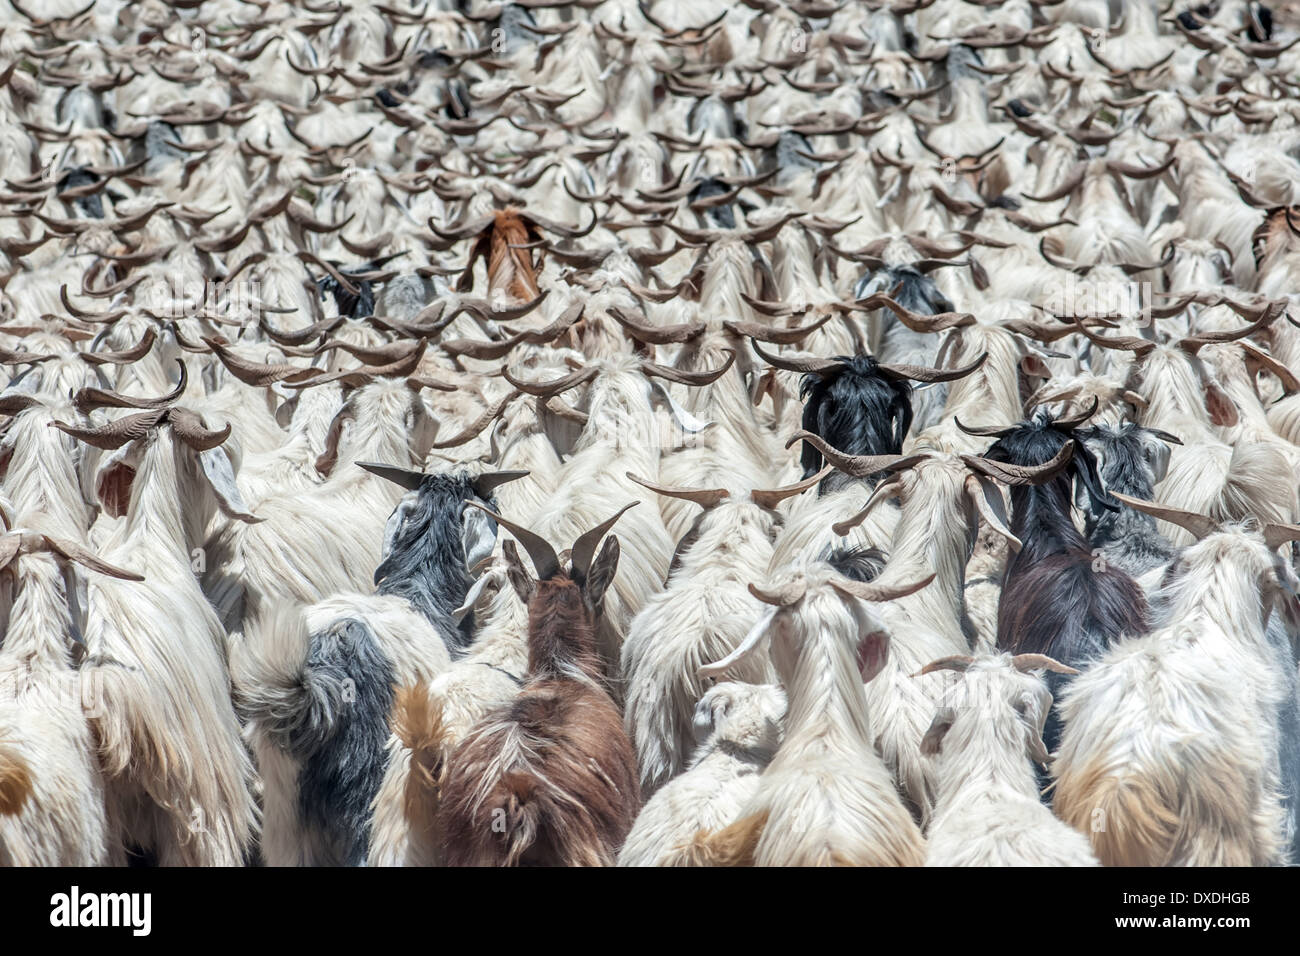 herd of goats in mountain - Stock Image